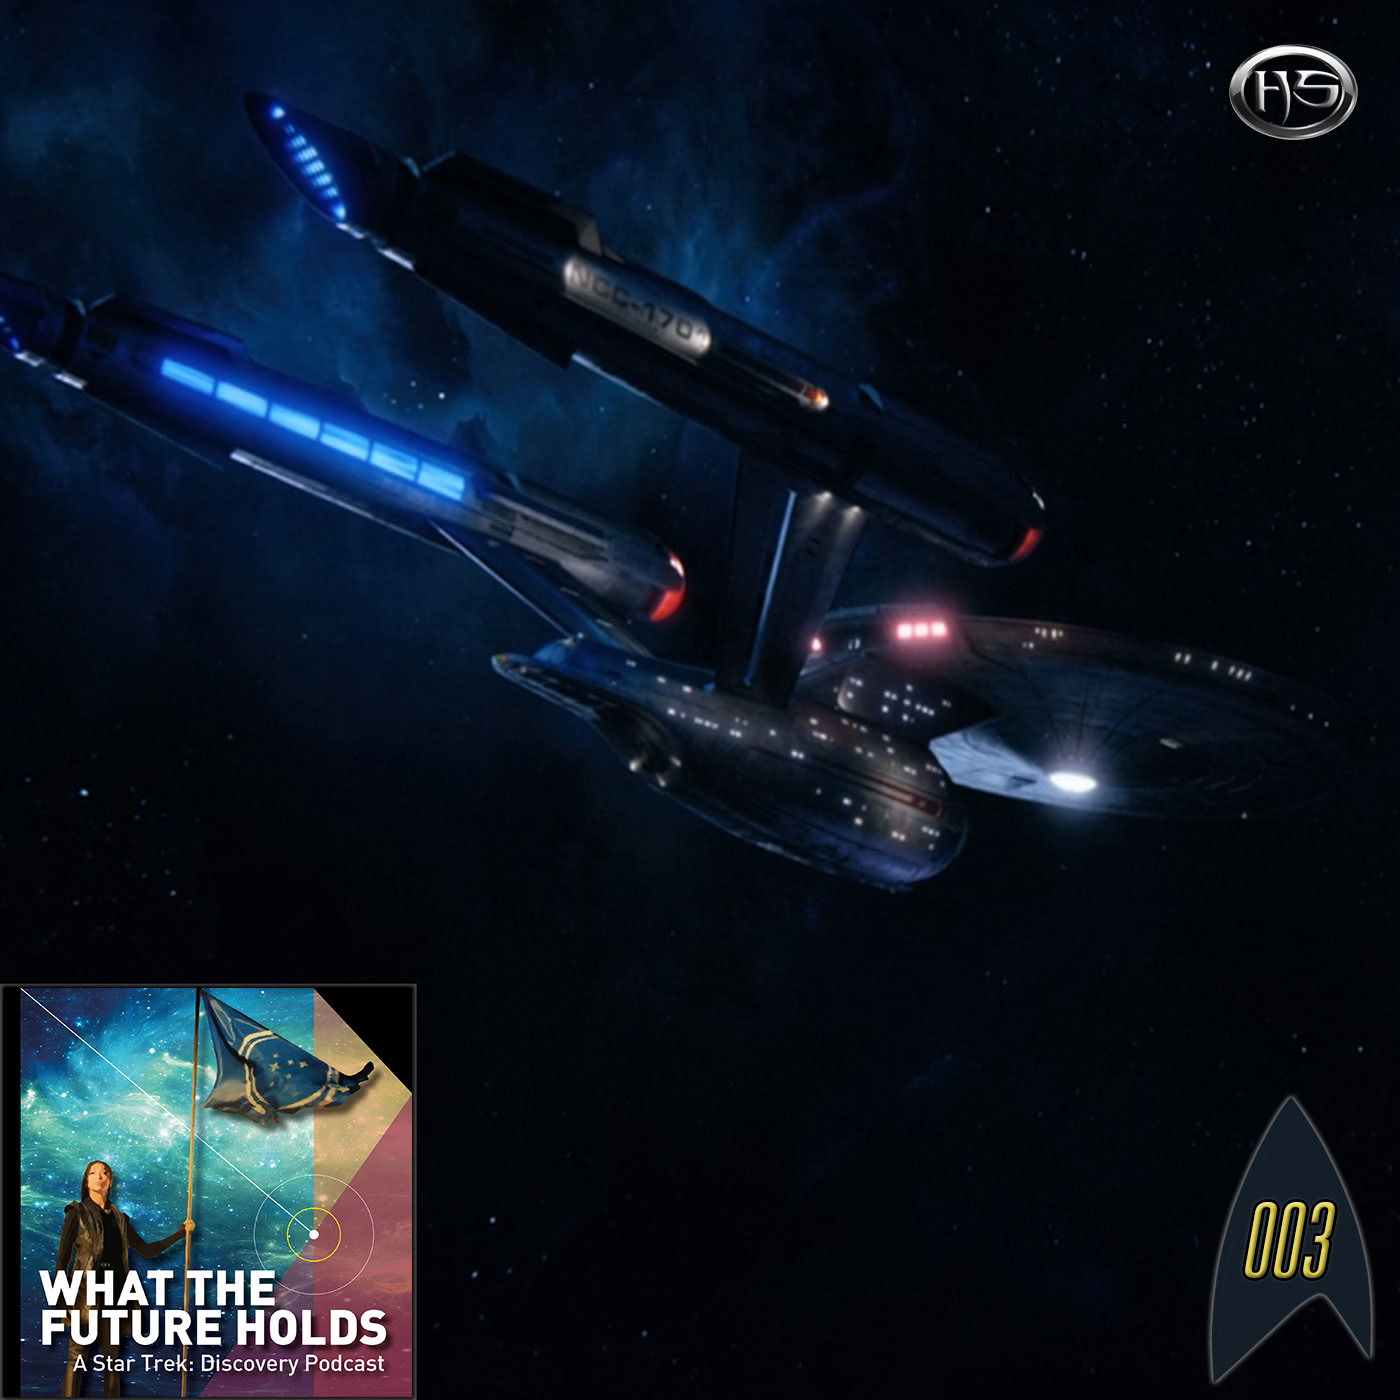 What The Future Holds Episode 3